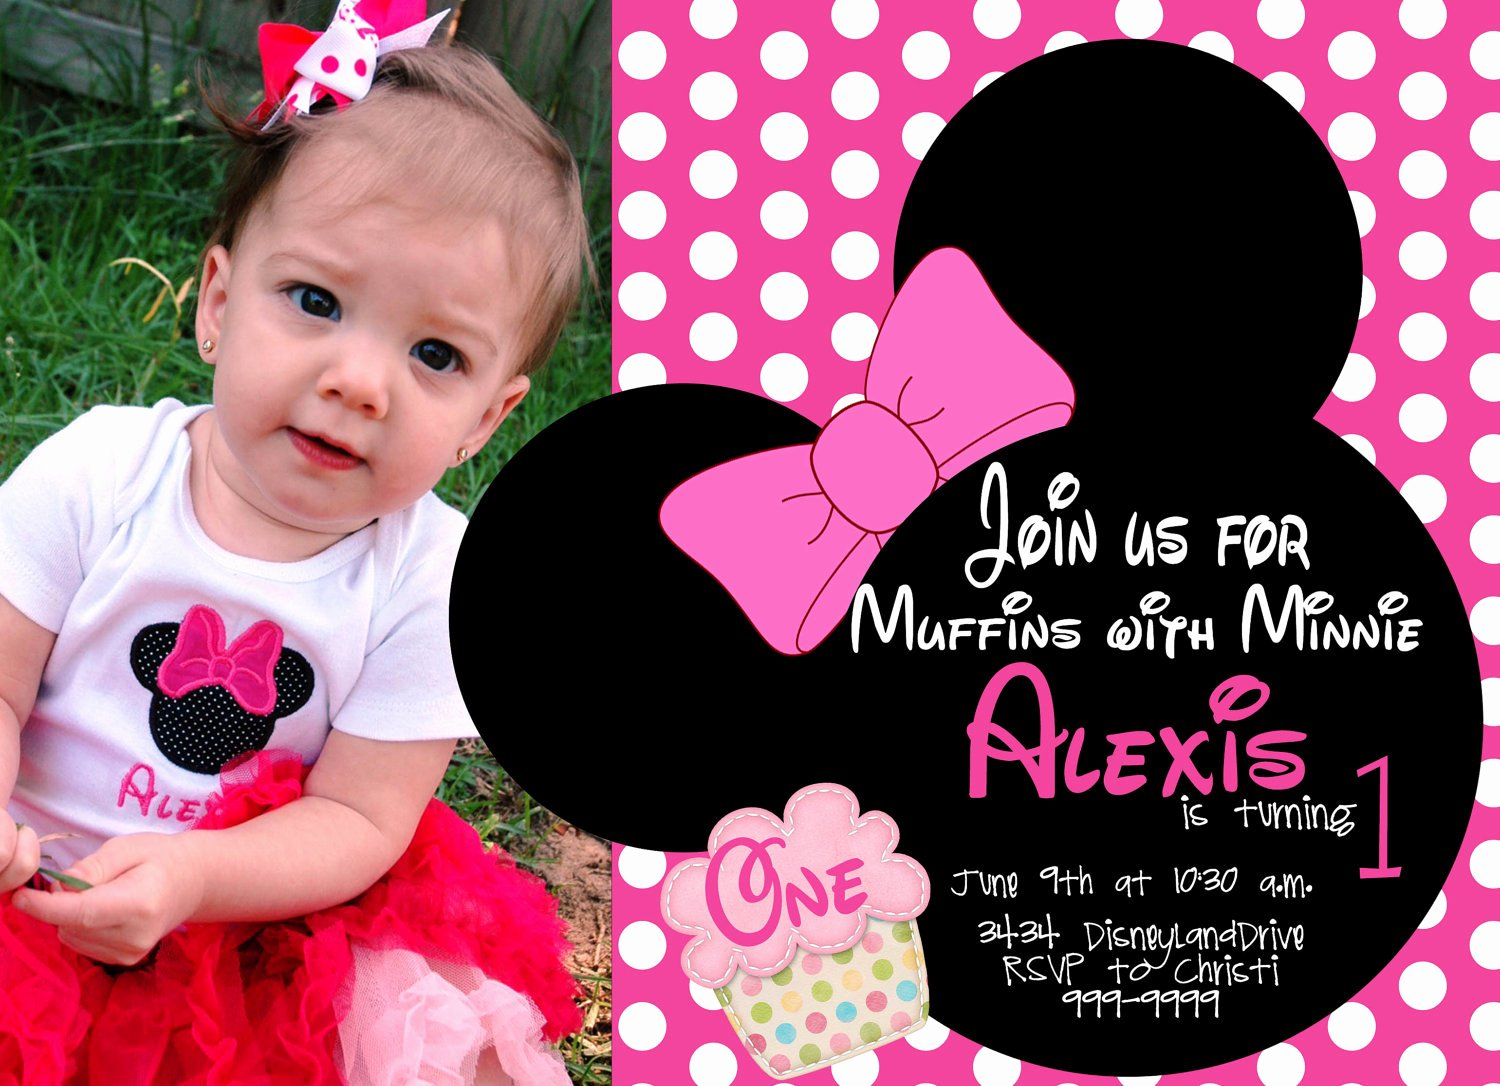 Minnie Mouse Invitation Wording Inspirational Minnie Mouse Birthday Invitation Wording